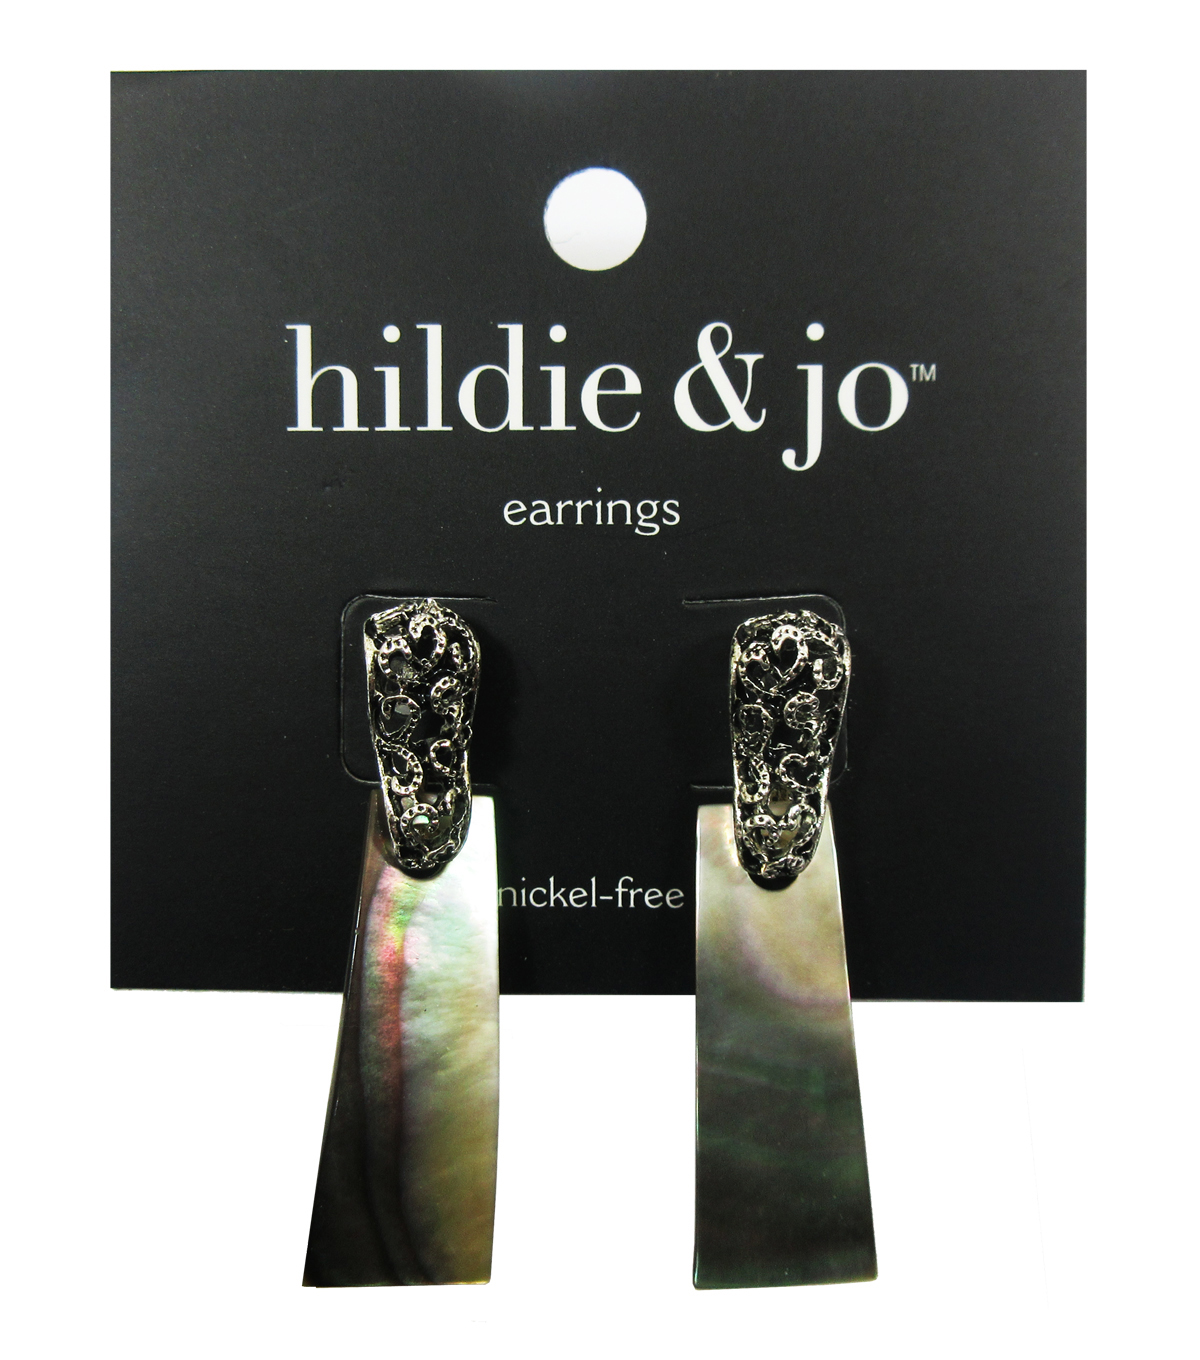 hildie & jo Antique Silver & Shell Post Earrings